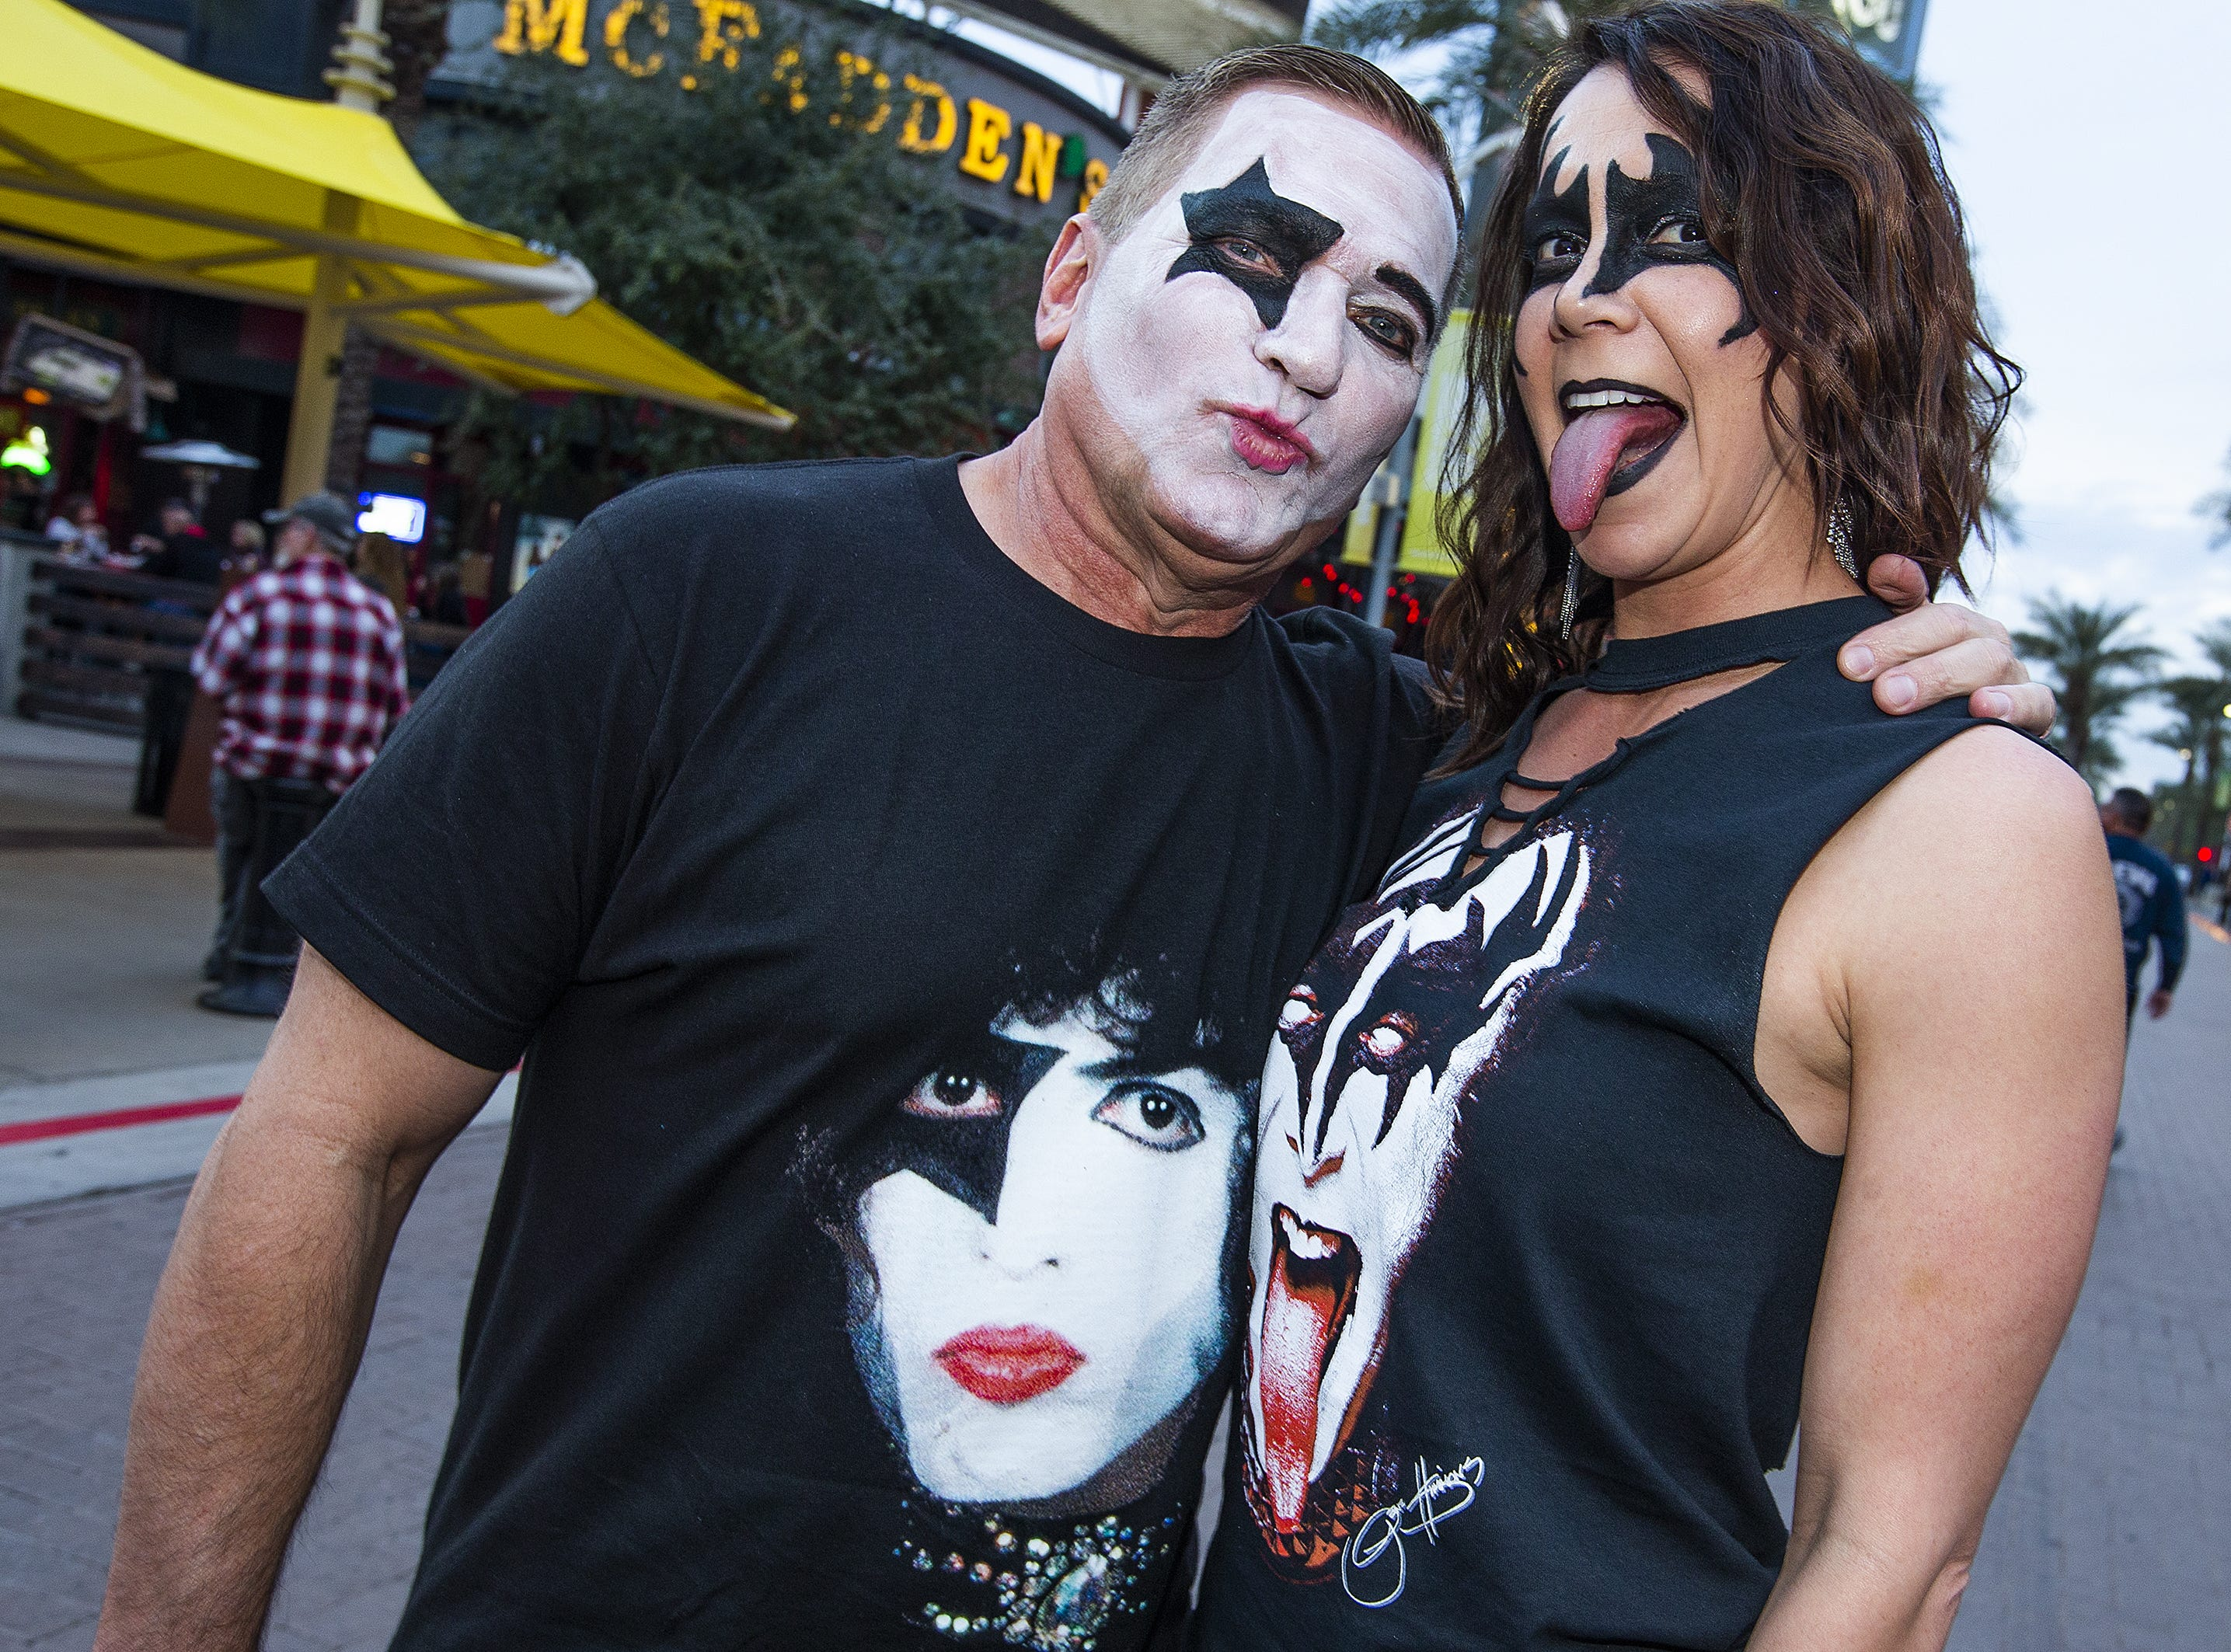 Tucson residents Kirk Stuessel, 56, and his wife, Sandra, 38, show off their best KISS make-up prior to the concert by the famed group at Gila River Arena in Glendale on Wednesday, Feb. 13, 2019.  The concert was part of the End of the Road World Tour, the band's farewell to the fans.